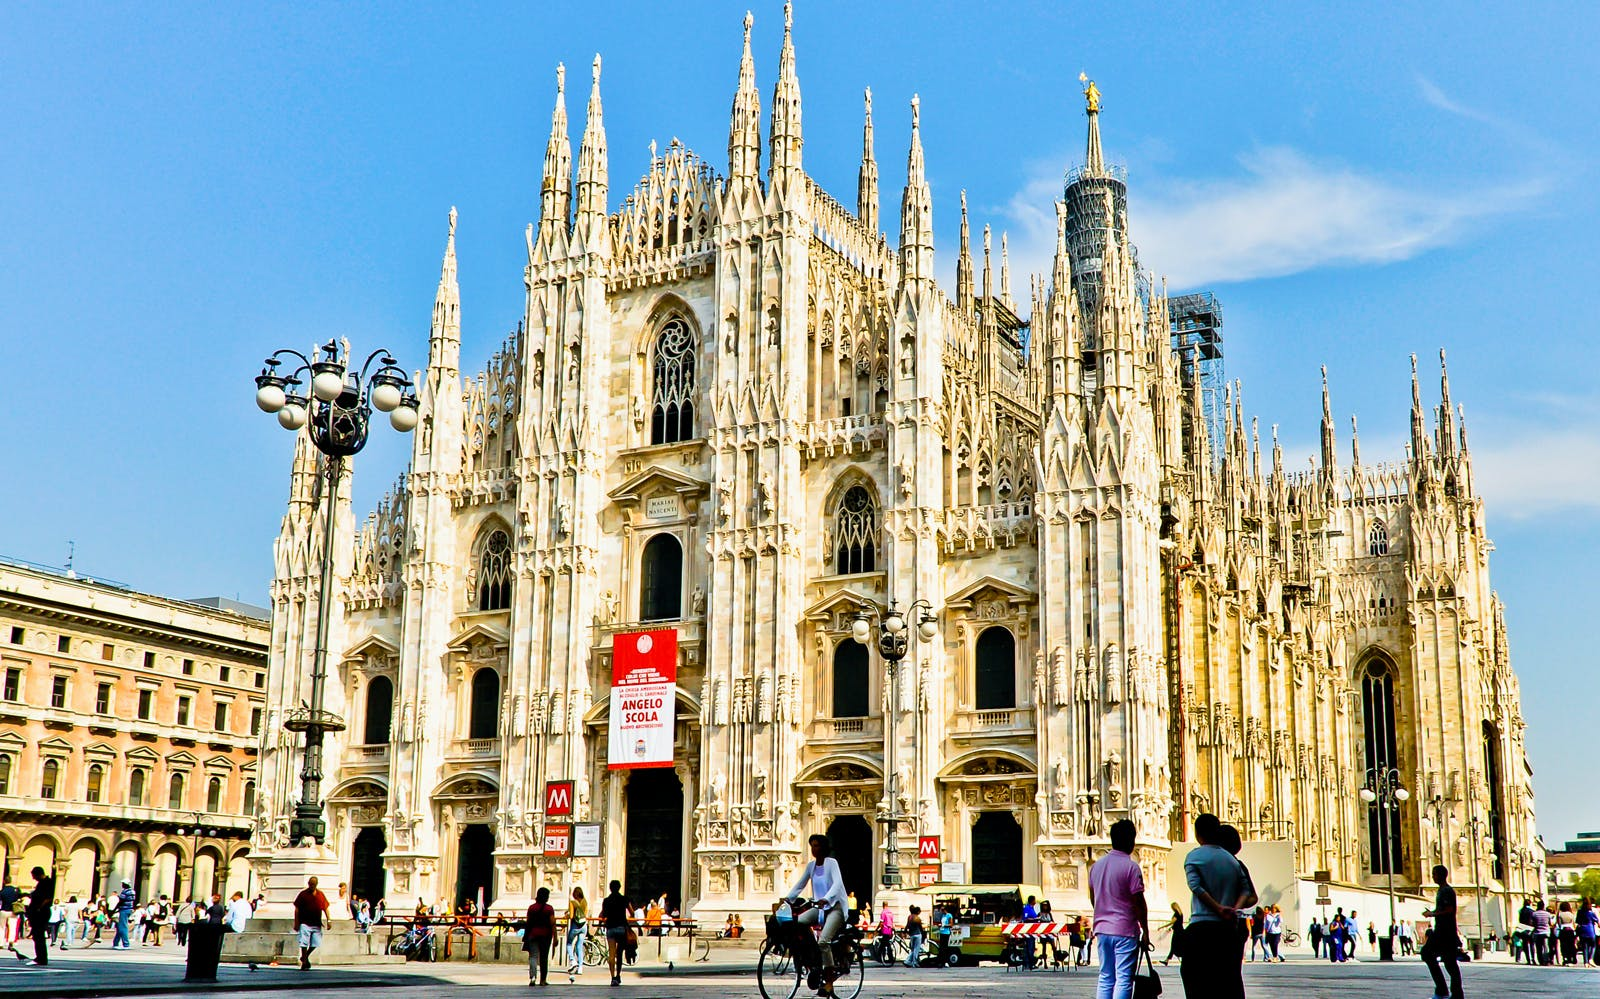 Best of Milan Duomo Cathedral & Da Vinci's 'Last Supper' Tour